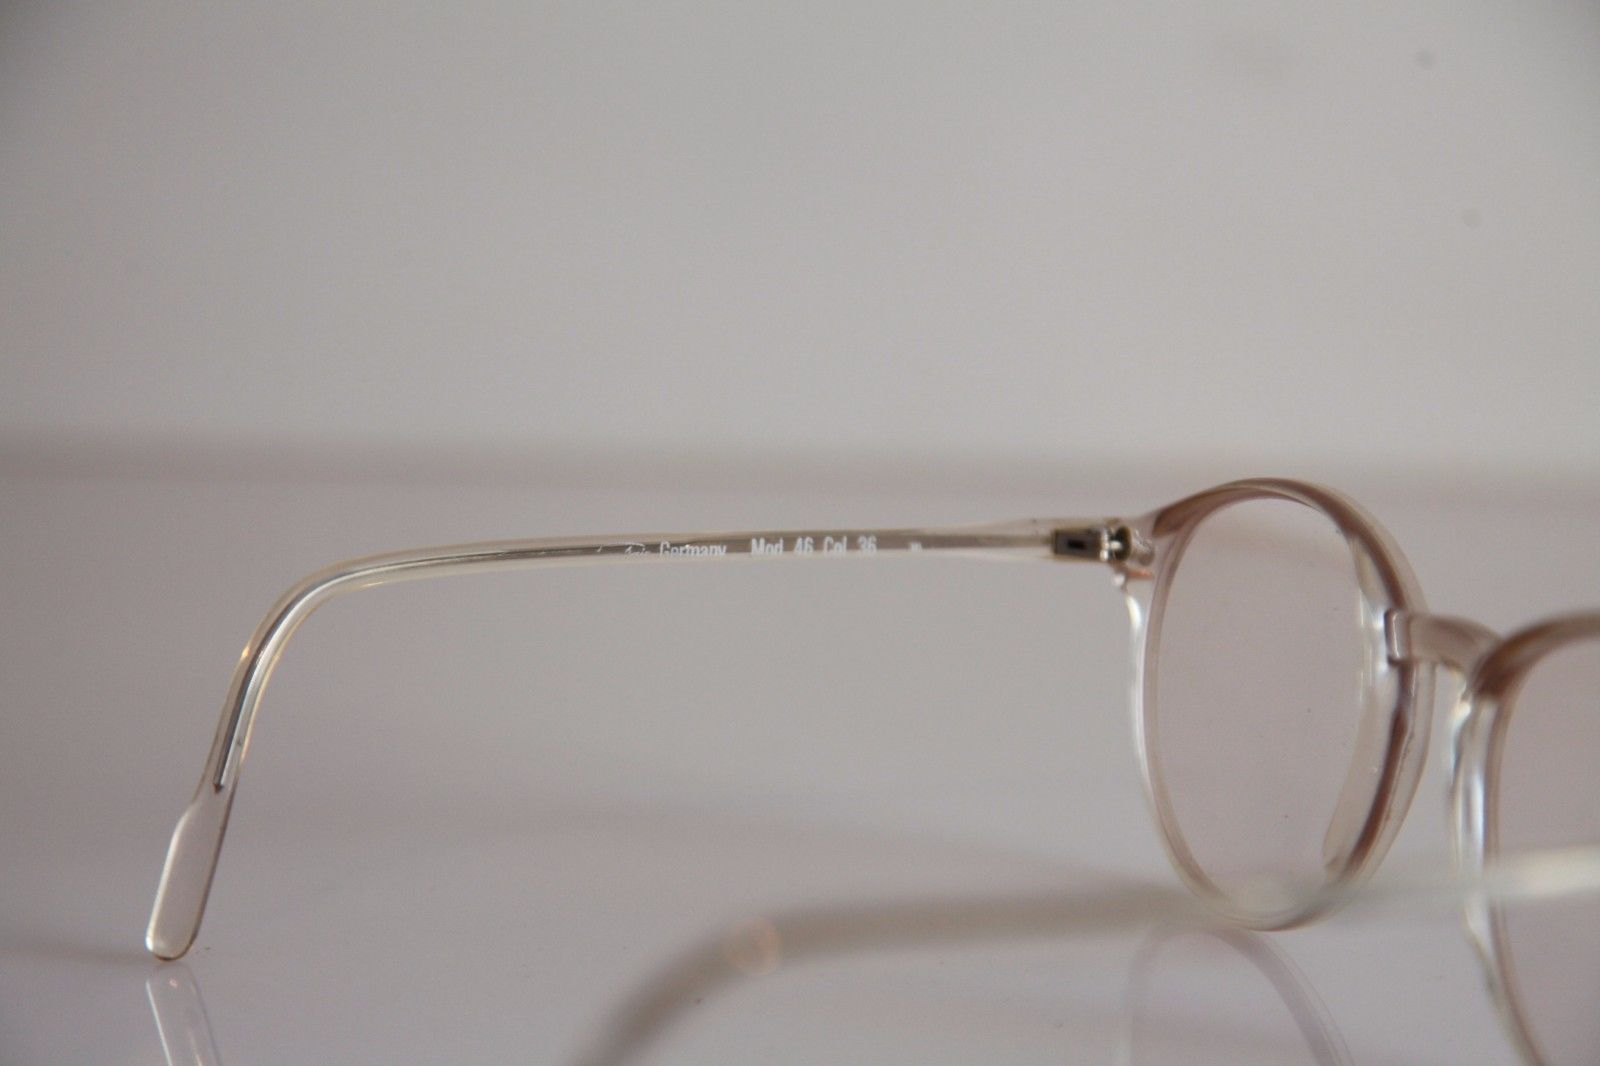 FLAIR Eyewear, Crystal Frame,  RX-Able Prescription Lenses.  Made in Germany